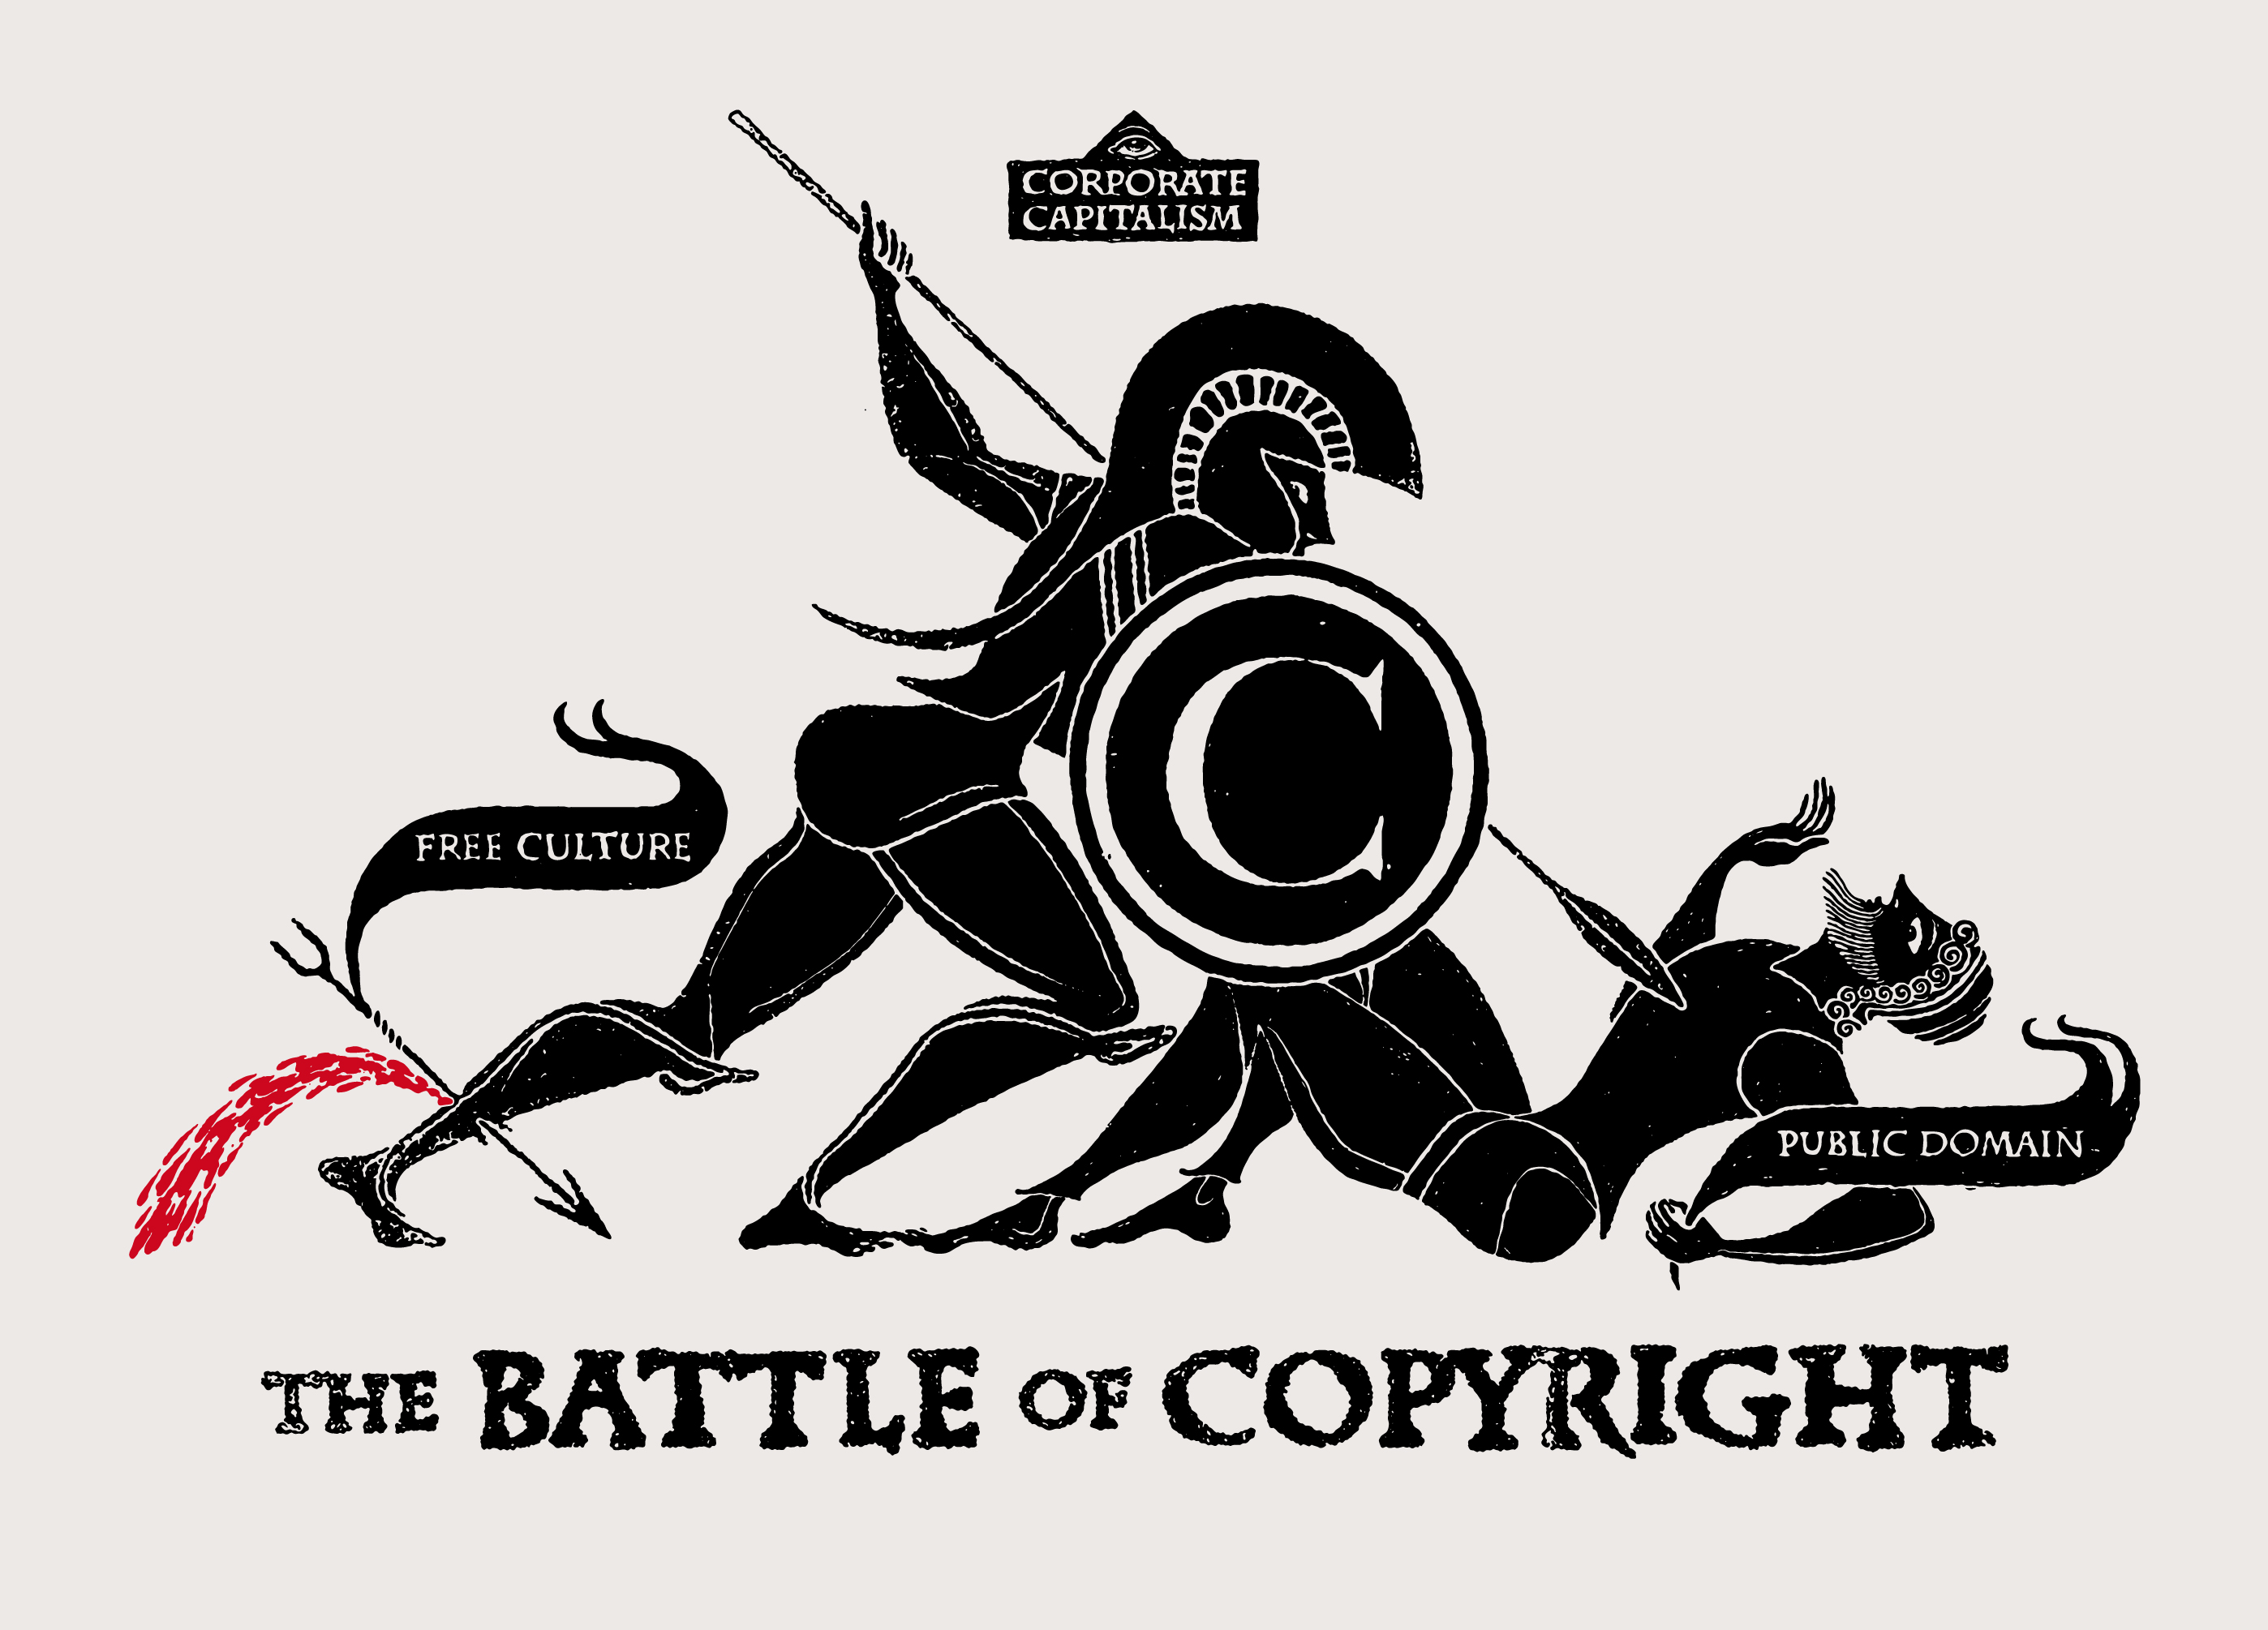 https://i1.wp.com/upload.wikimedia.org/wikipedia/commons/7/74/THE_BATTLE_OF_COPYRIGHT.jpg